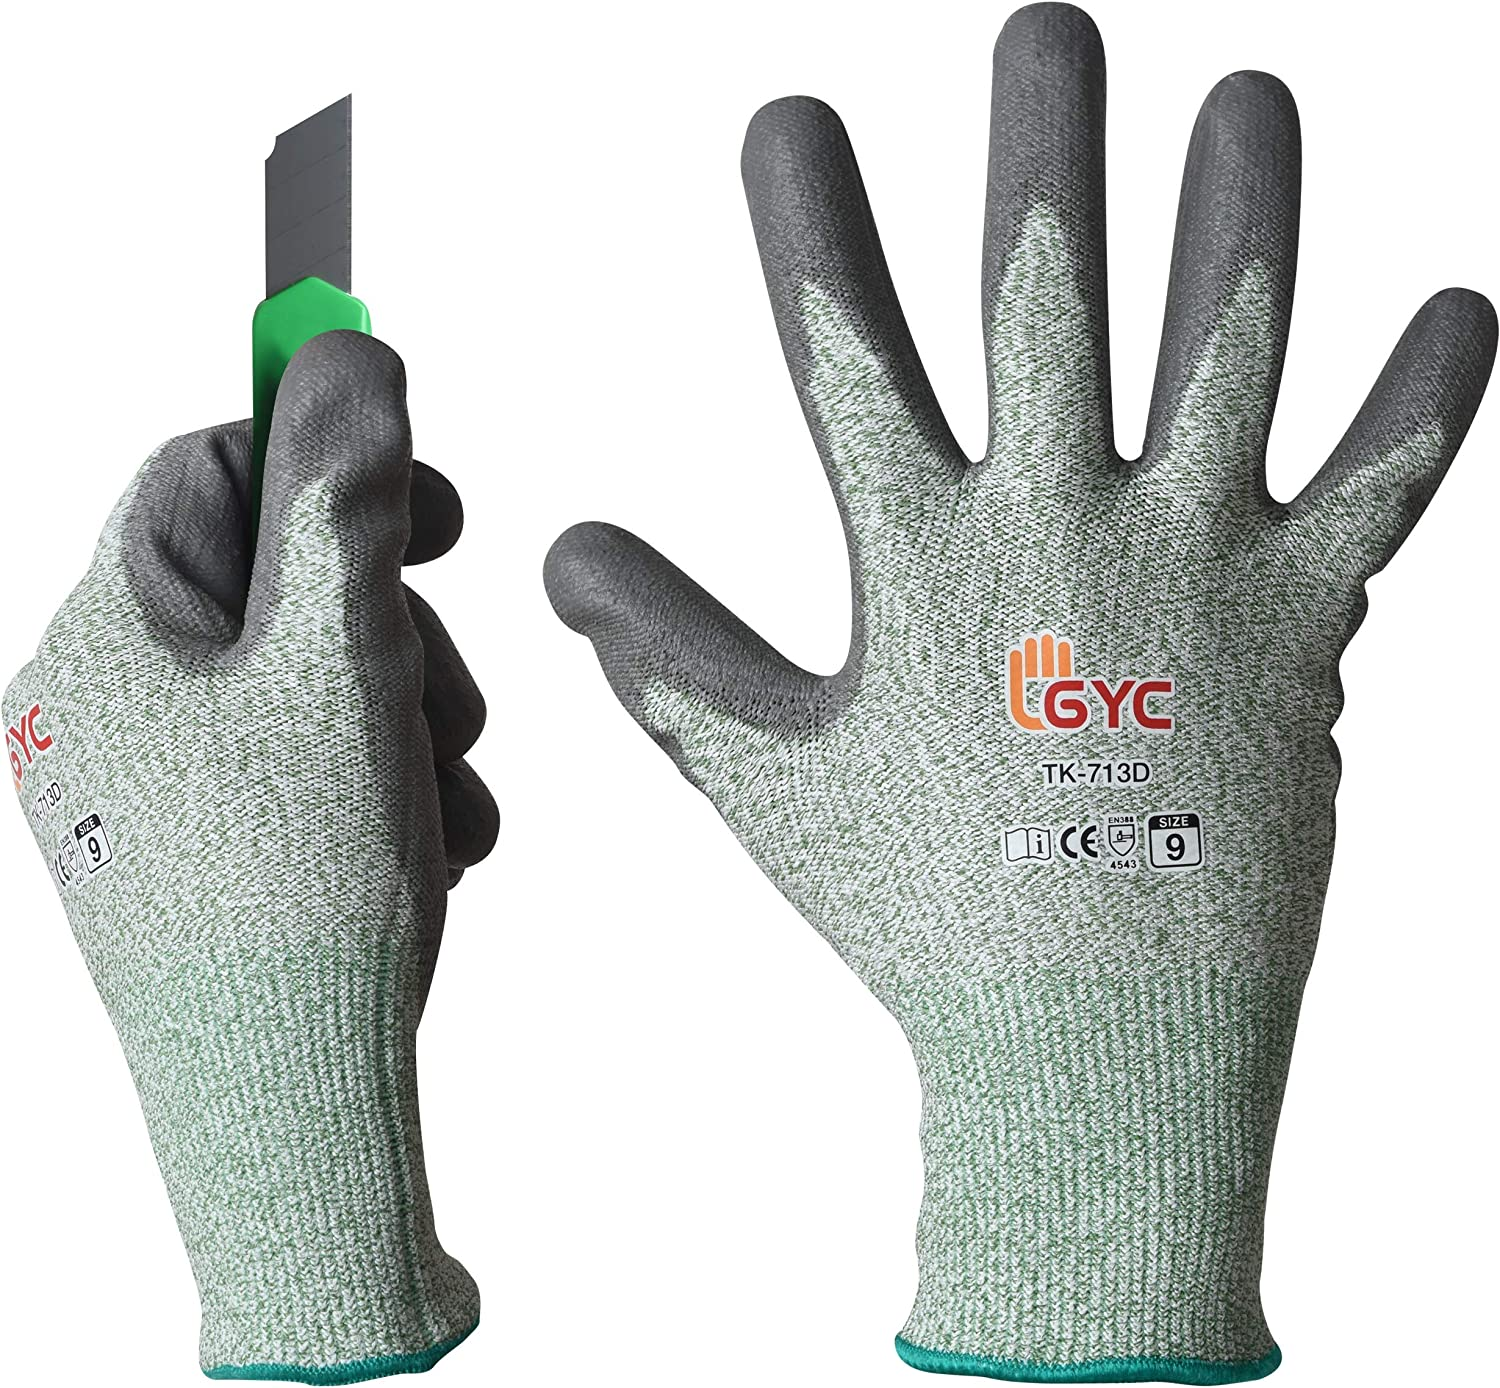 GYC Gloves, Cut Resistant Safety Work Gloves - Level 5 Cut Protection, 10 Pairs Pack - Excellent Dexterity & Breathability, Comfortable Soft PU coated (TK-713D/Size 9 - LARGE)